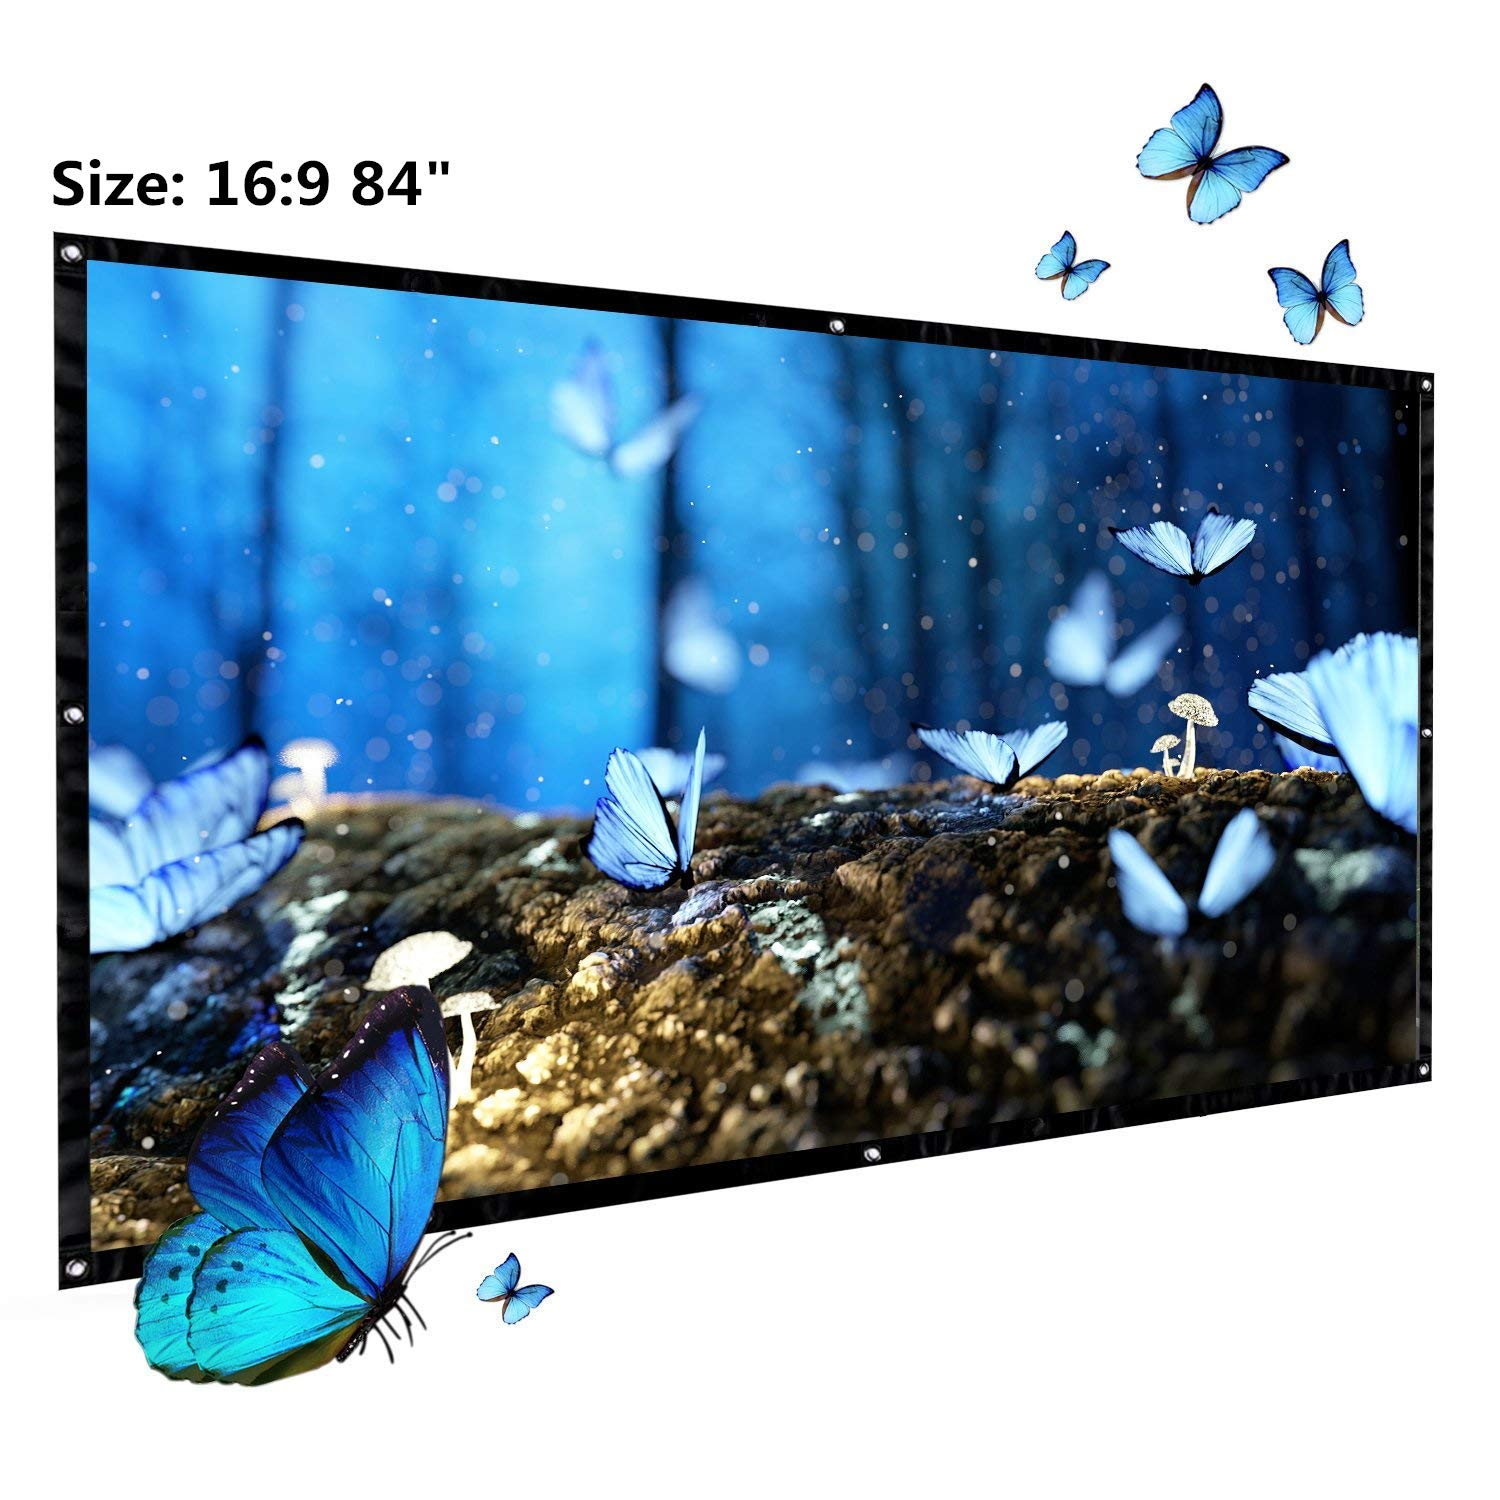 Projector Screen, Auledio Portable Outdoor Movie Screen 120 16:9 Home Cinema Theater Projection Screen